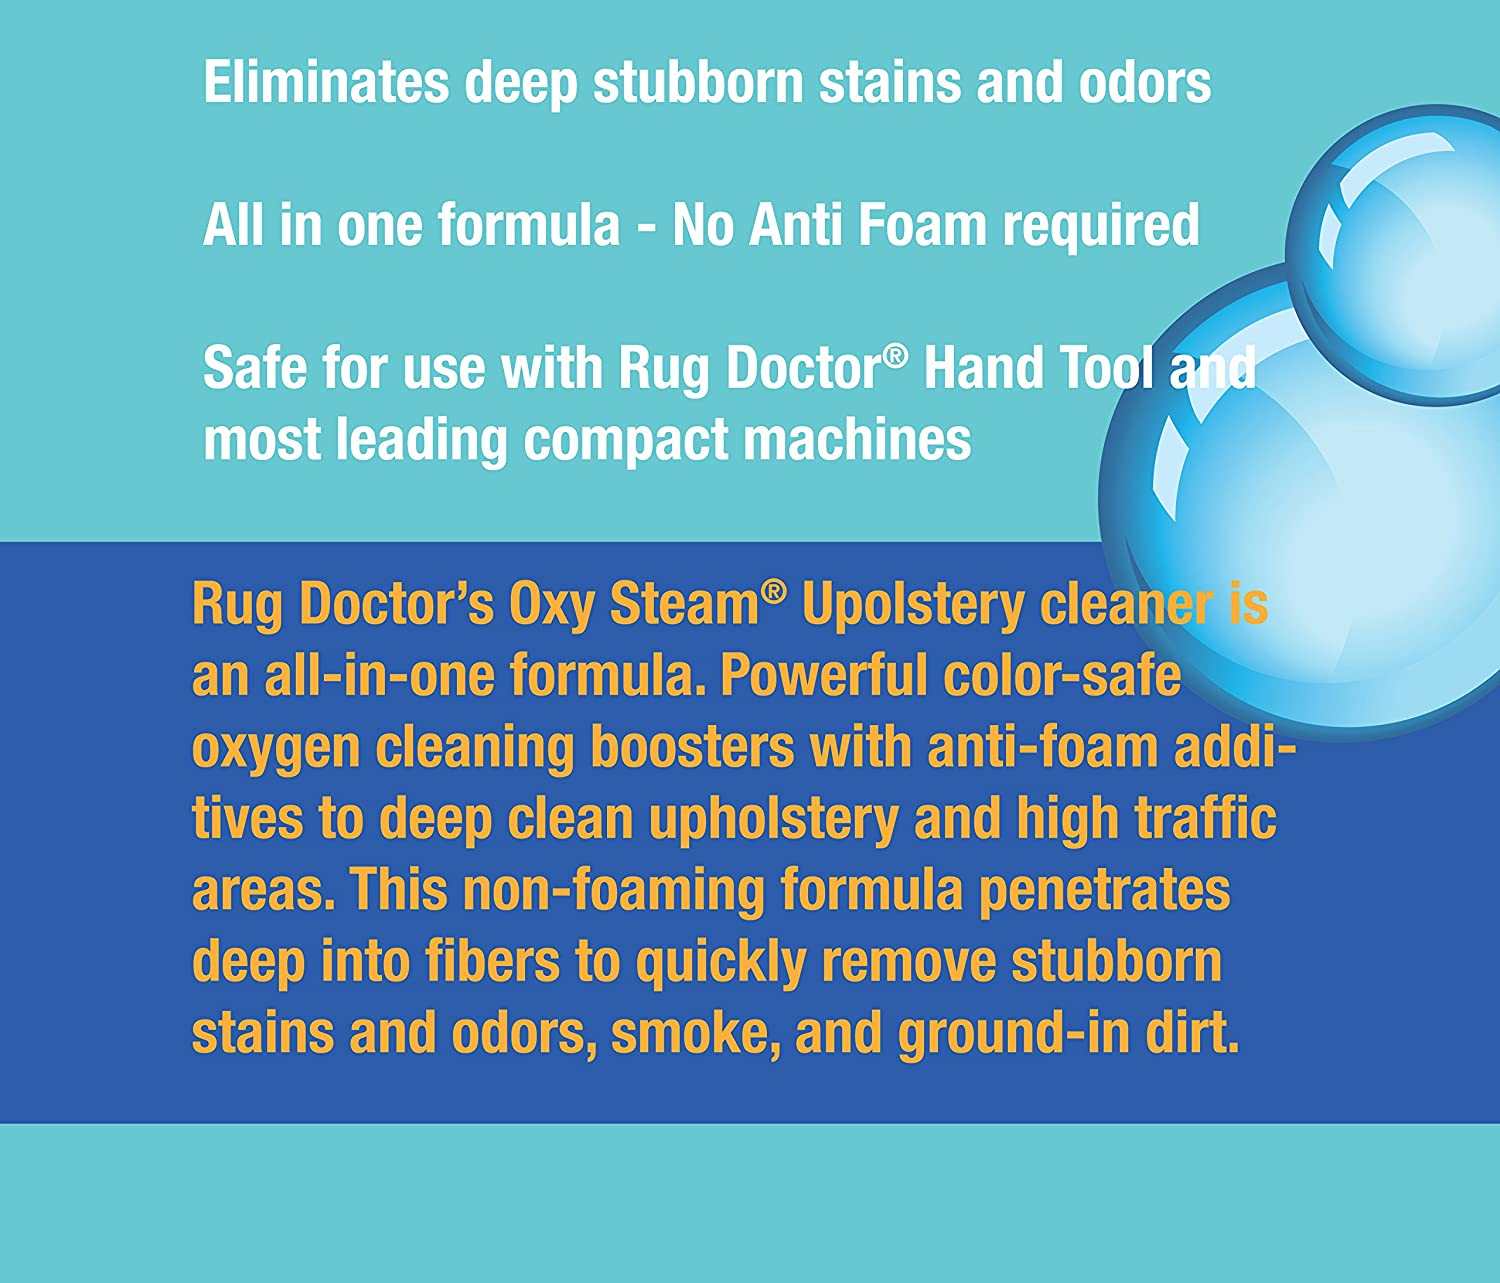 High Quality Amazon.com: Rug Doctor Oxy Steam Upholstery Cleaner Solution, Deep Cleans  And Extracts Stains And Dirt From Upholstery And Soft Surfaces, 32 Oz.